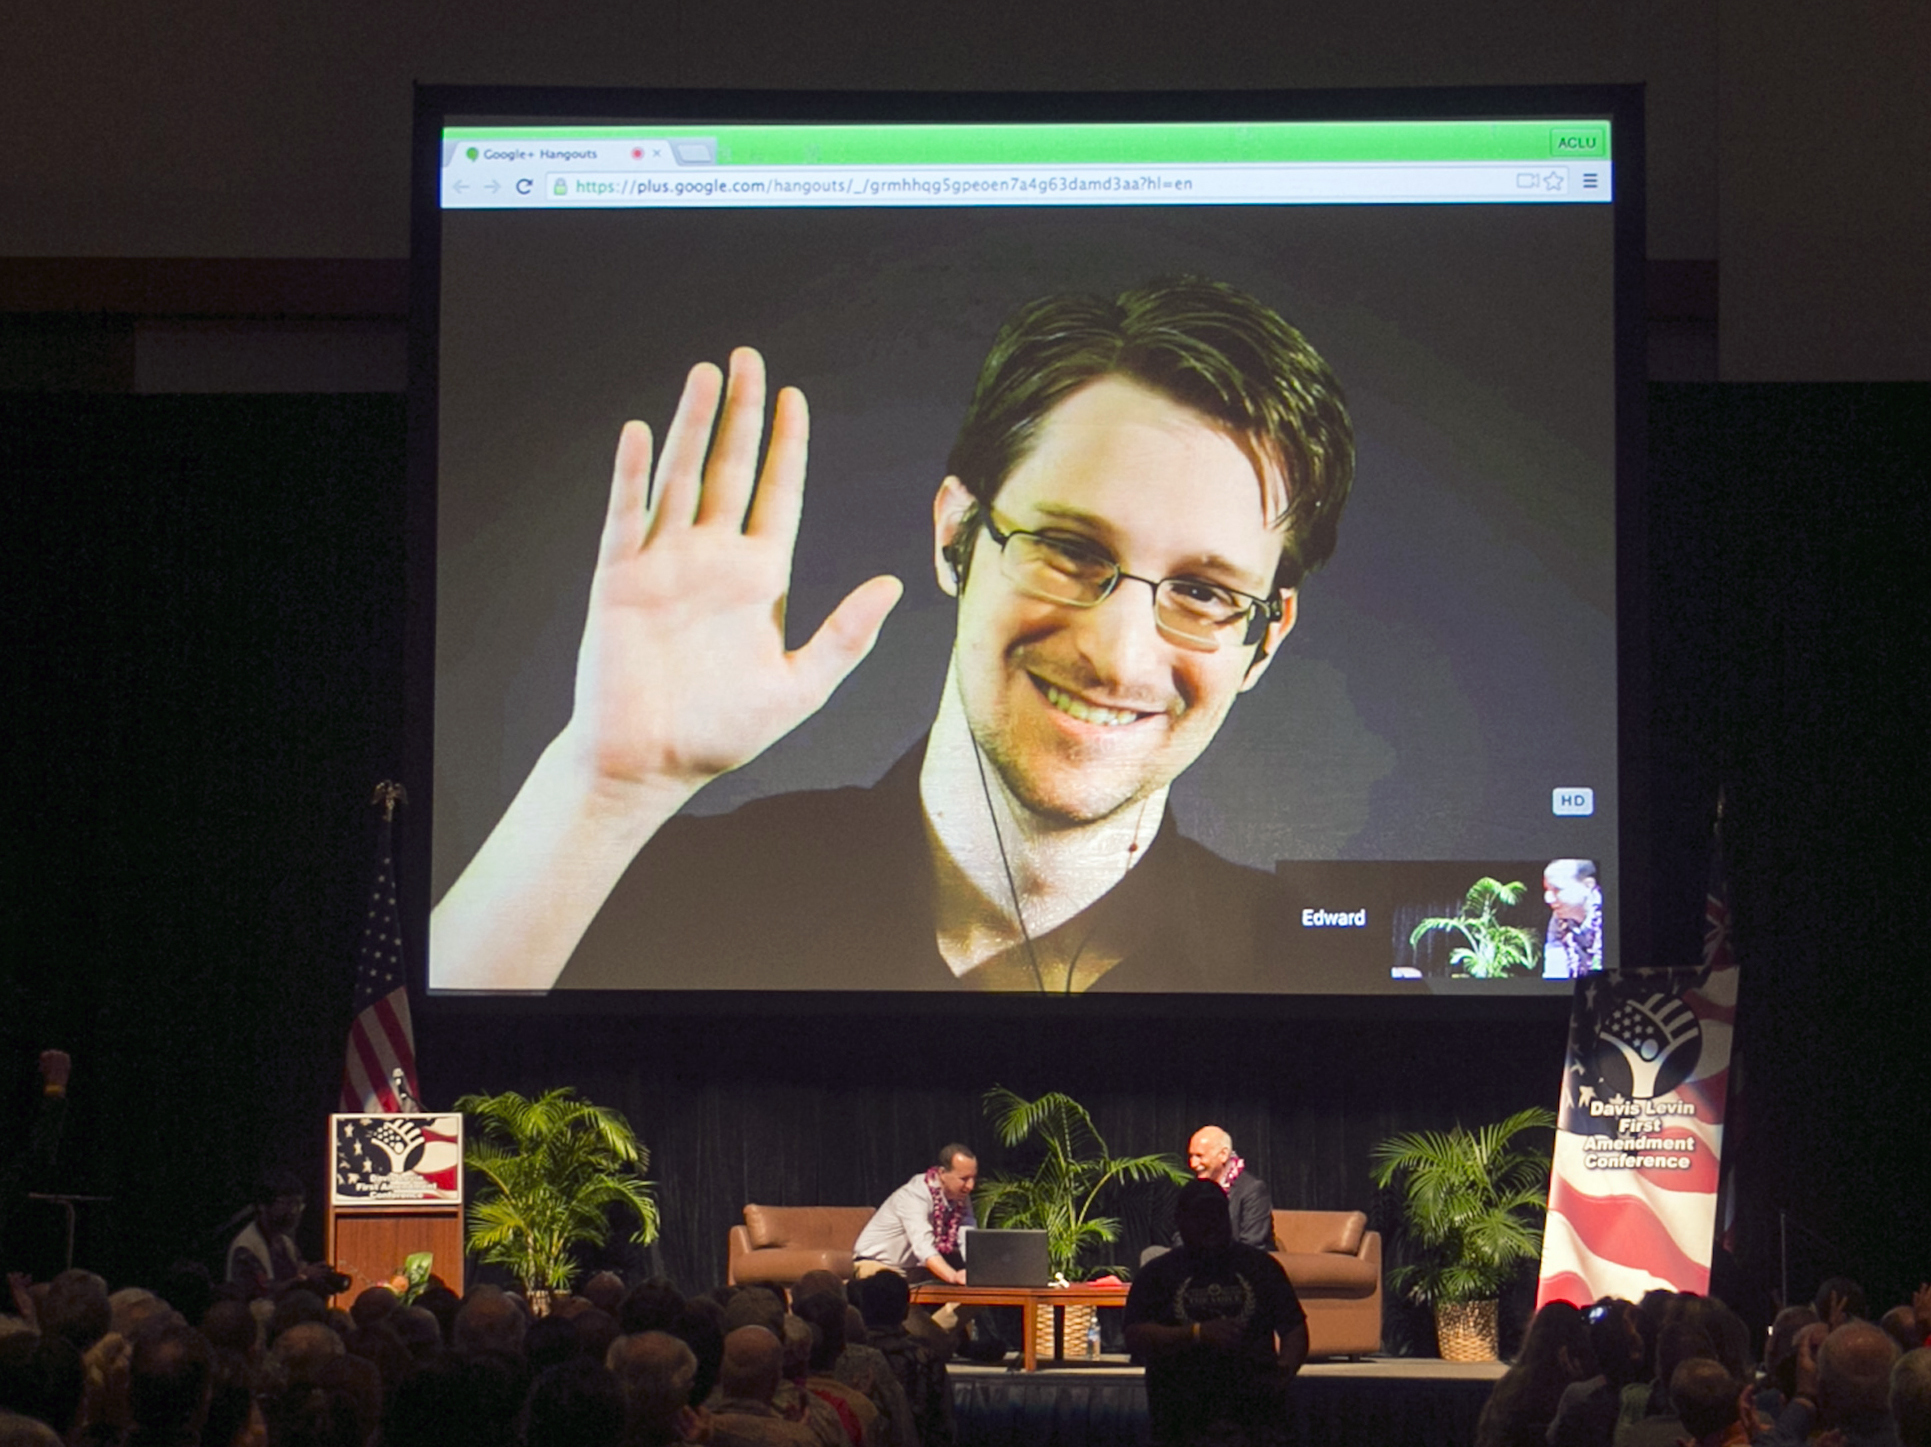 Edward Snowden Tells NPR: The Executive Branch 'Sort Of Hacked The Constitution'